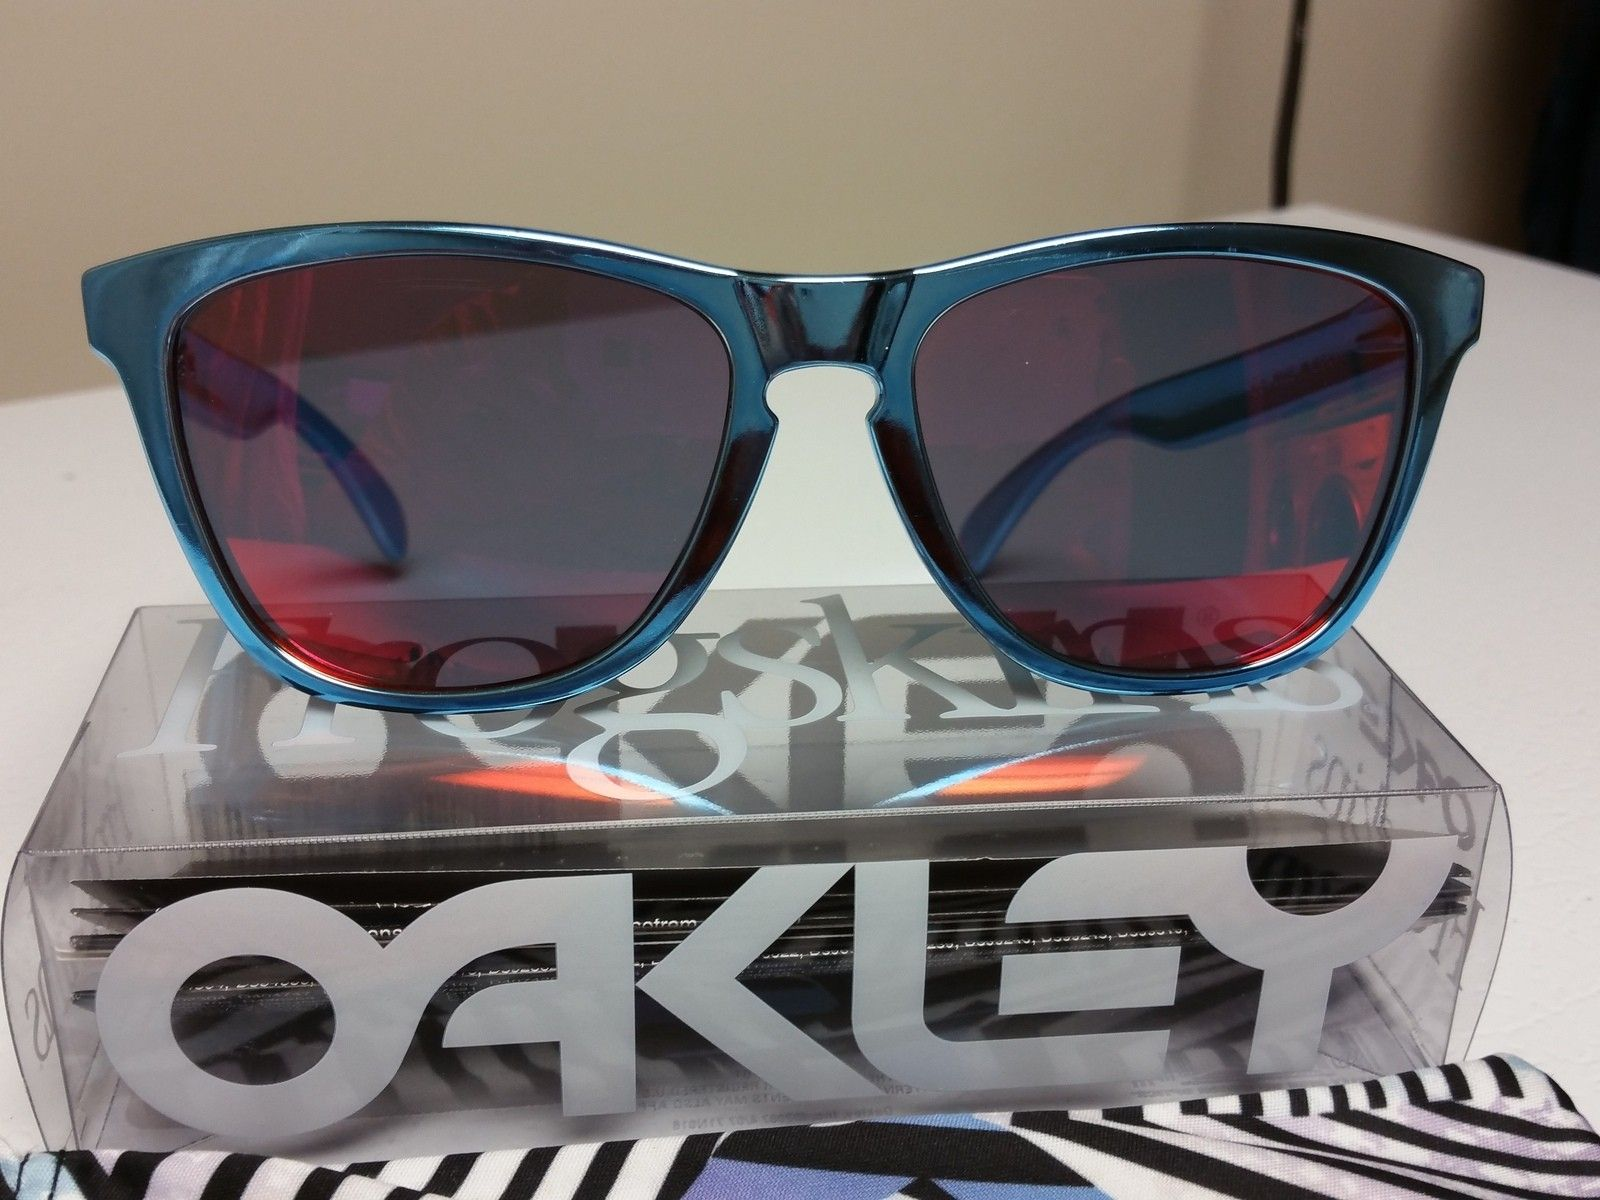 Shaun white blue chrome frogskins - 14497202886041160873552.jpg